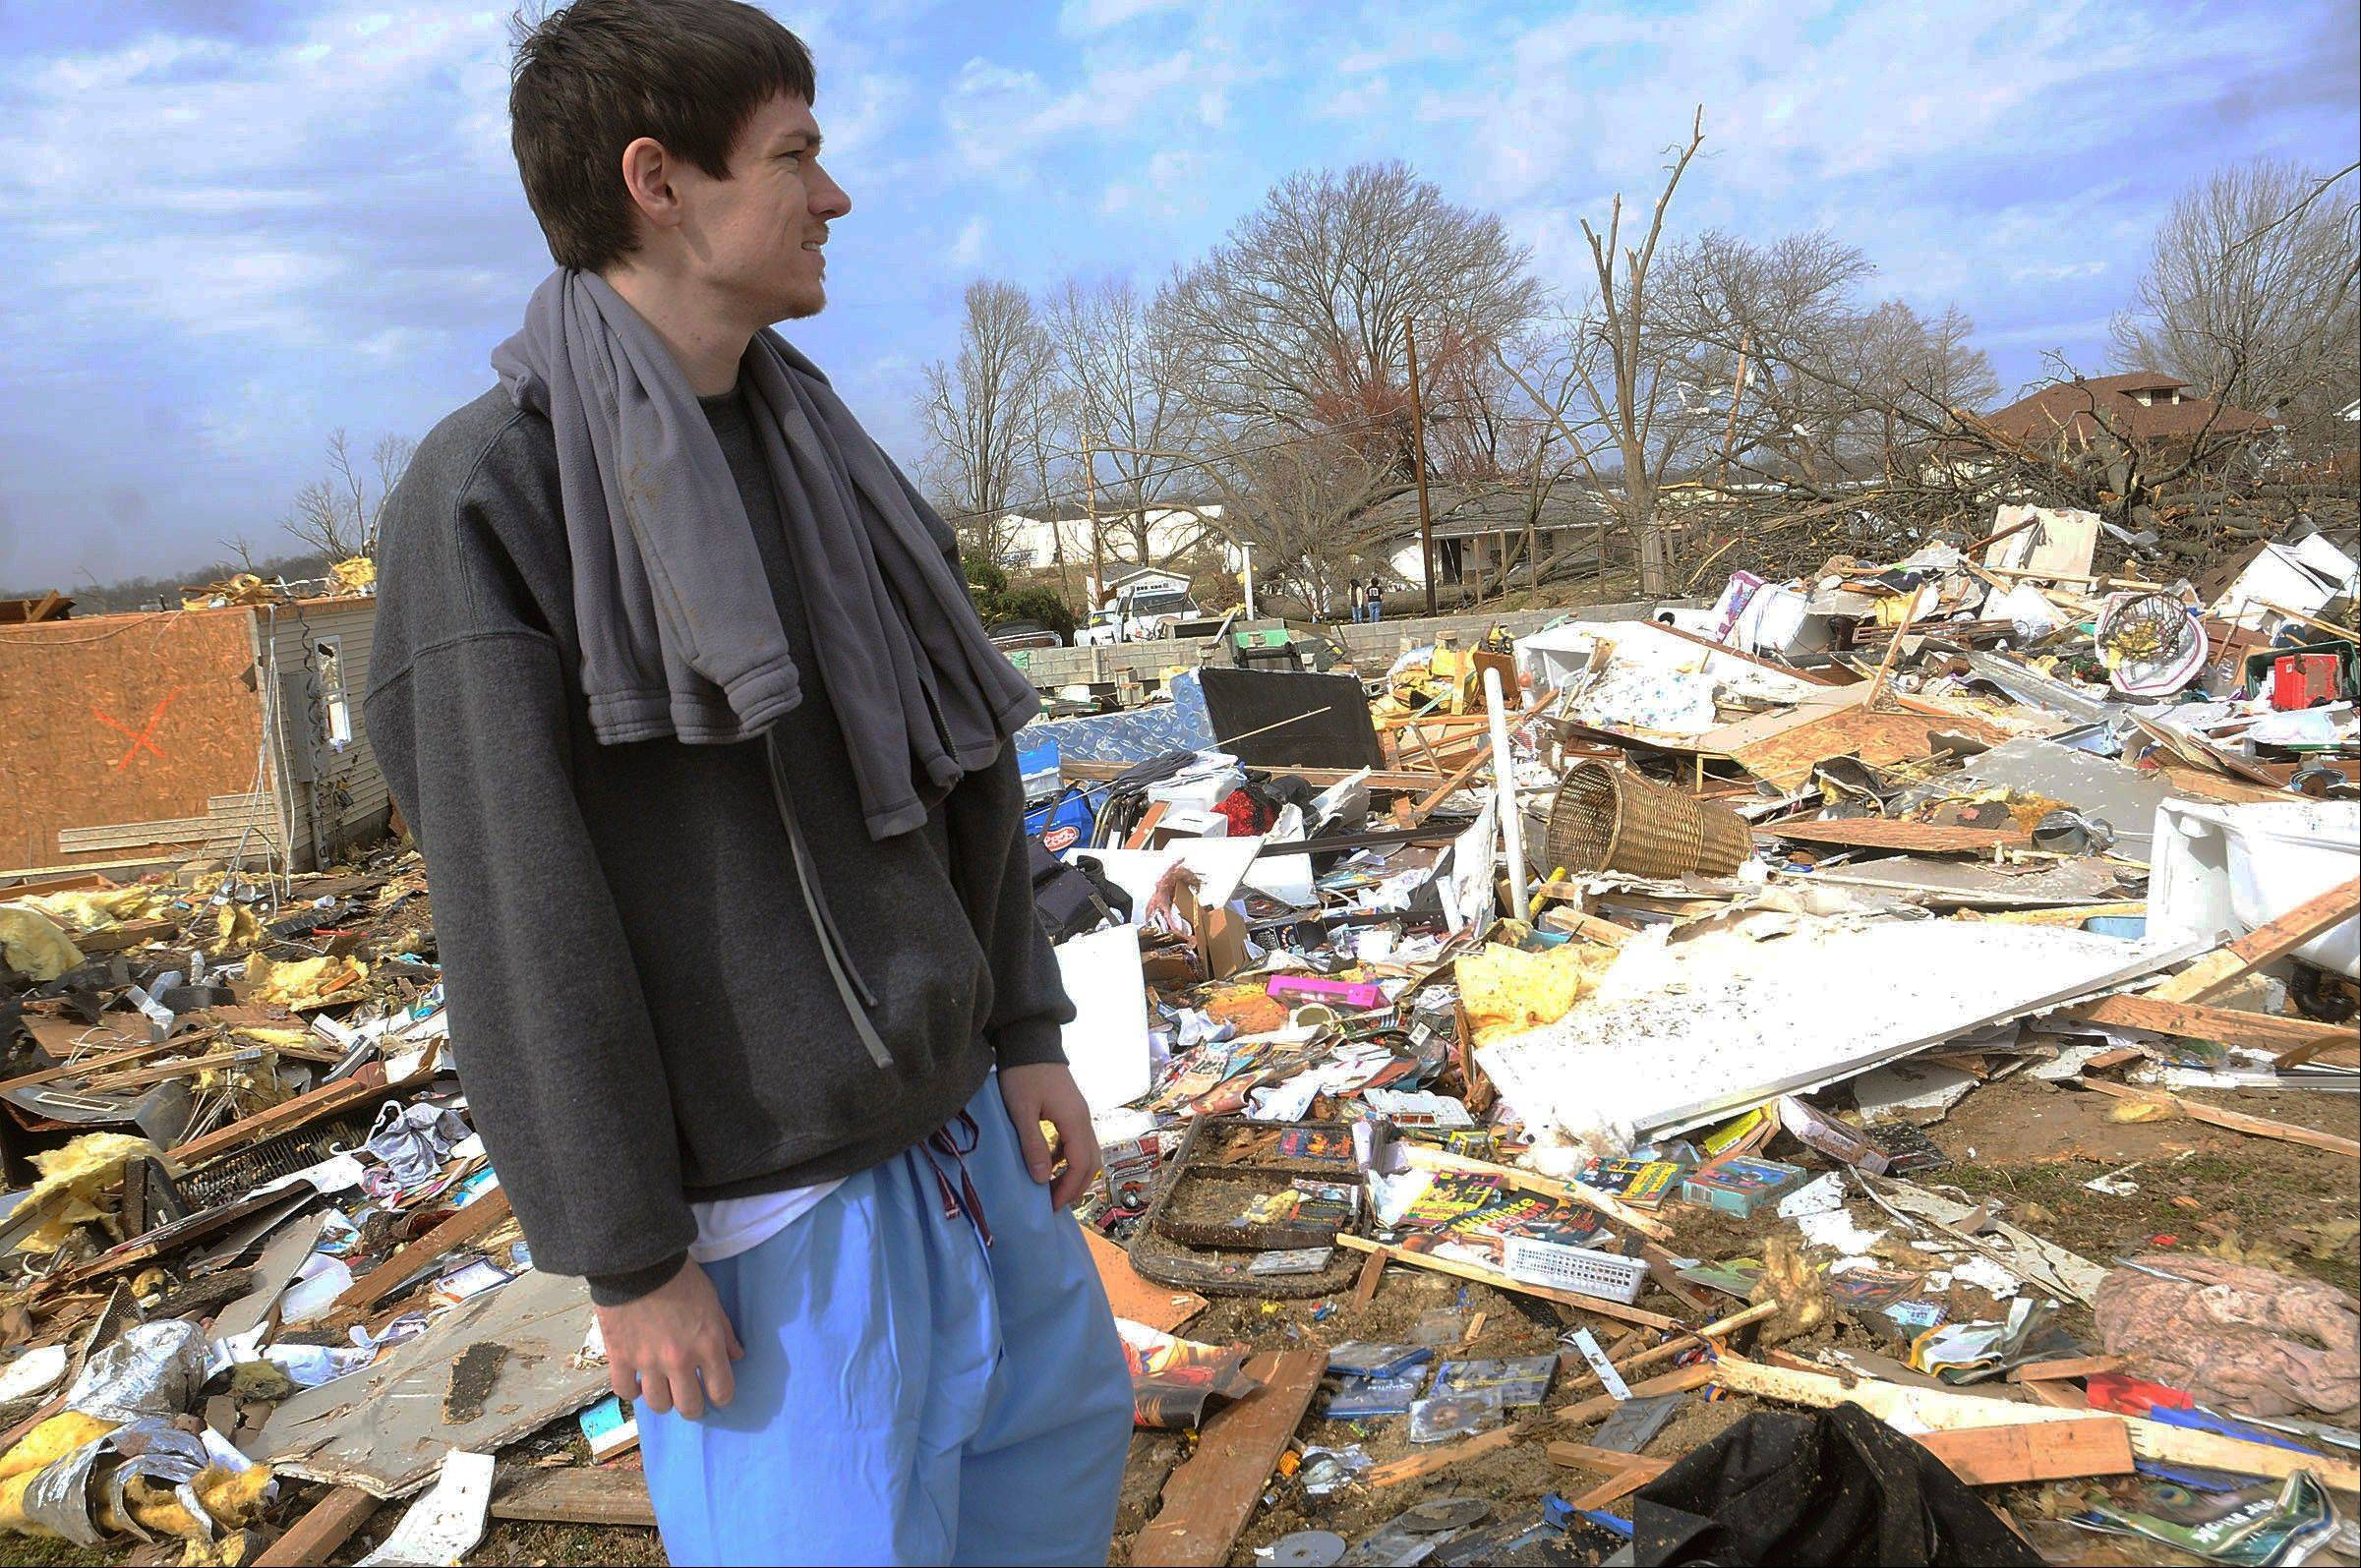 Shawn Anglin looks over the remains of his South Water Street home while retrieving belongings after a severe storm hit in the early morning hours on Wednesday, Feb. 29, 2012, in Harrisrbug, Ill. A severe pre-dawn storm pounded portions of southern Illinois on Wednesday. Several deaths have been reported in Harrisburg and left the city's medical center scrambling to treat an influx of injured, the hospital's top administrator said.